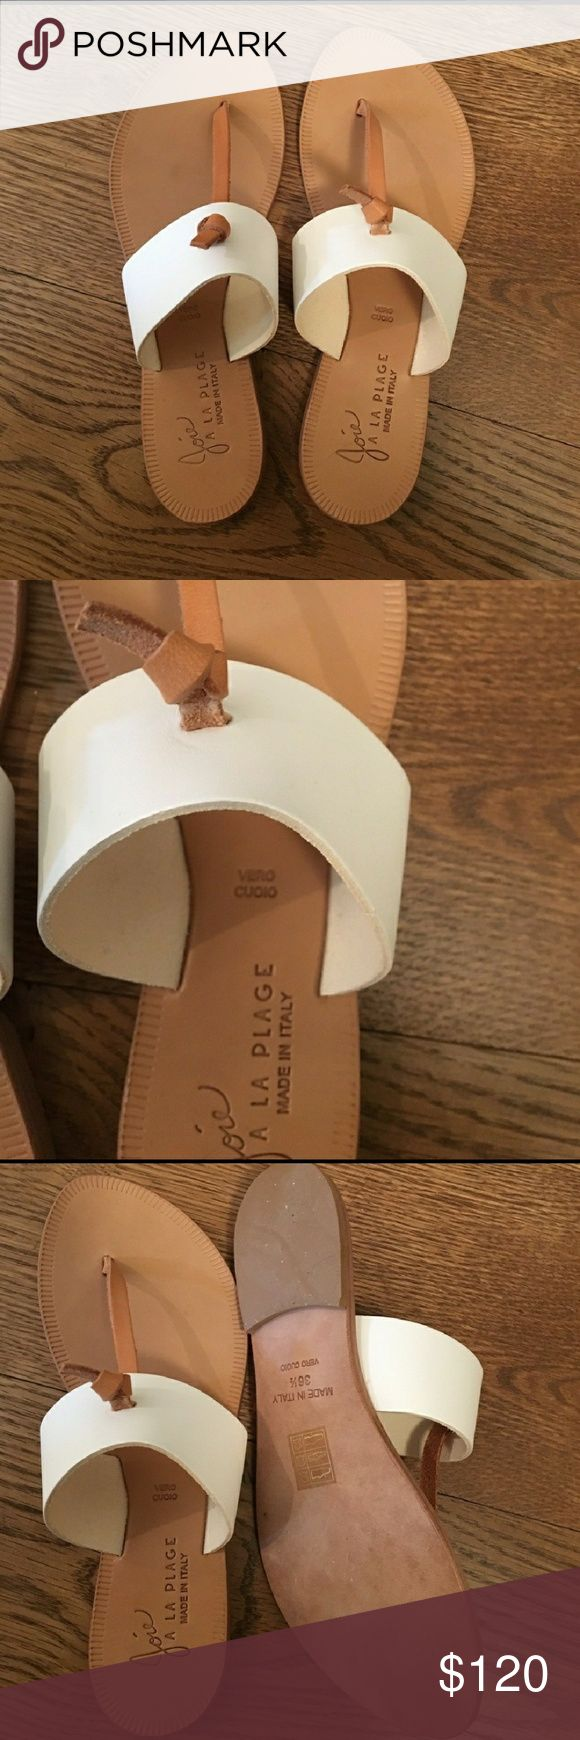 Joie La Plage Sandals New without tags,  never worn.  Perfect condition.  No trades no PayPal.  Offers welcome through the offer button but price is pretty firm for now.  ?? Joie Shoes Sandals